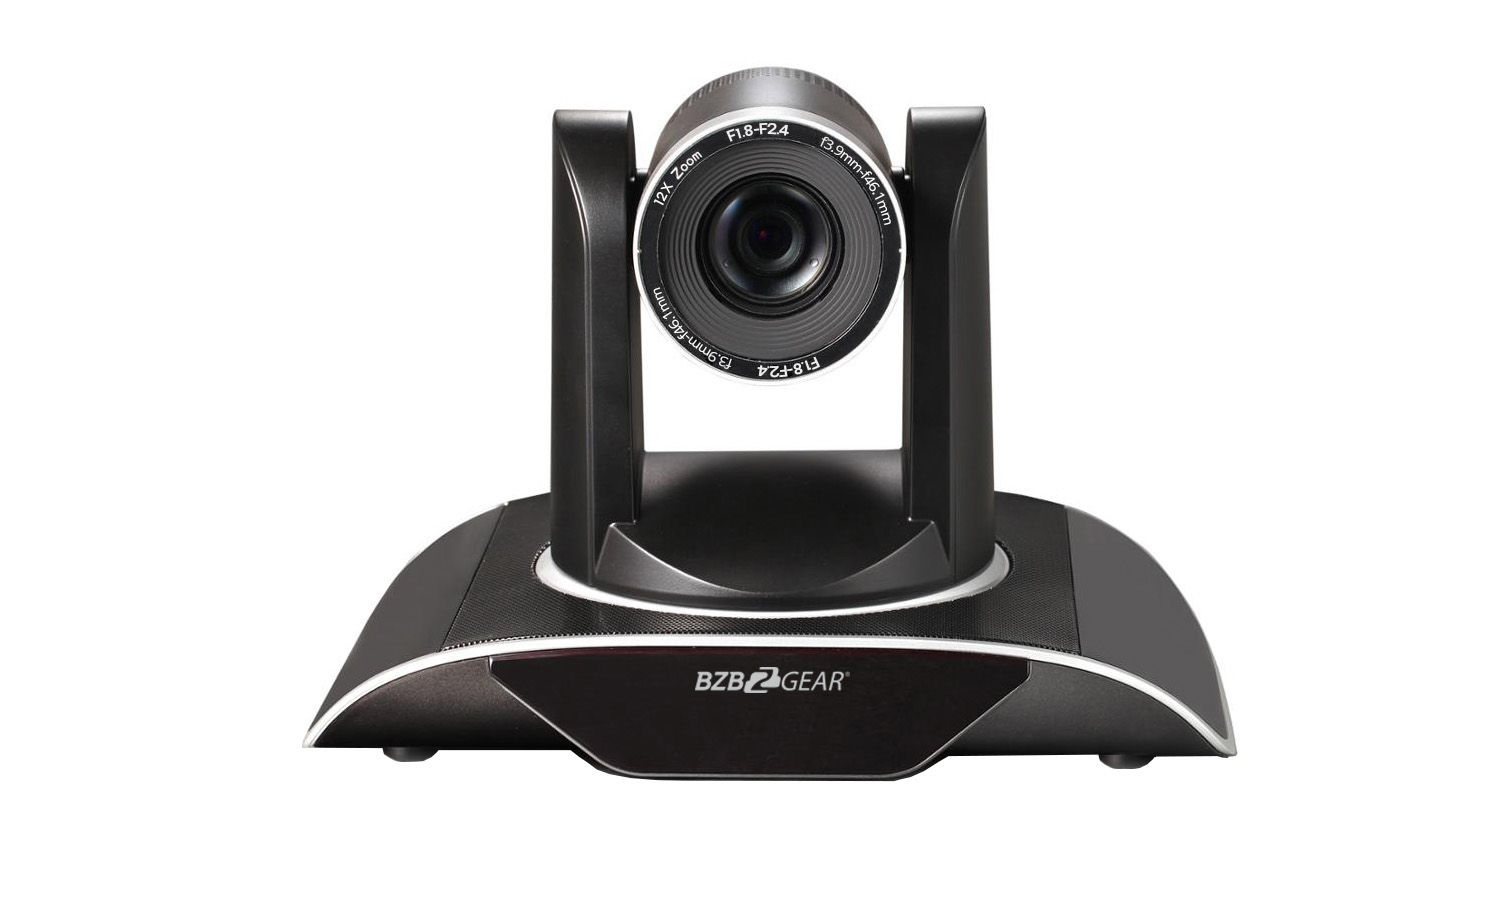 BG-BPTZ-12XHUDR PTZ 12X Zoom Full HD USB3.0 RS232 Live Streaming Camera by BZBGEAR